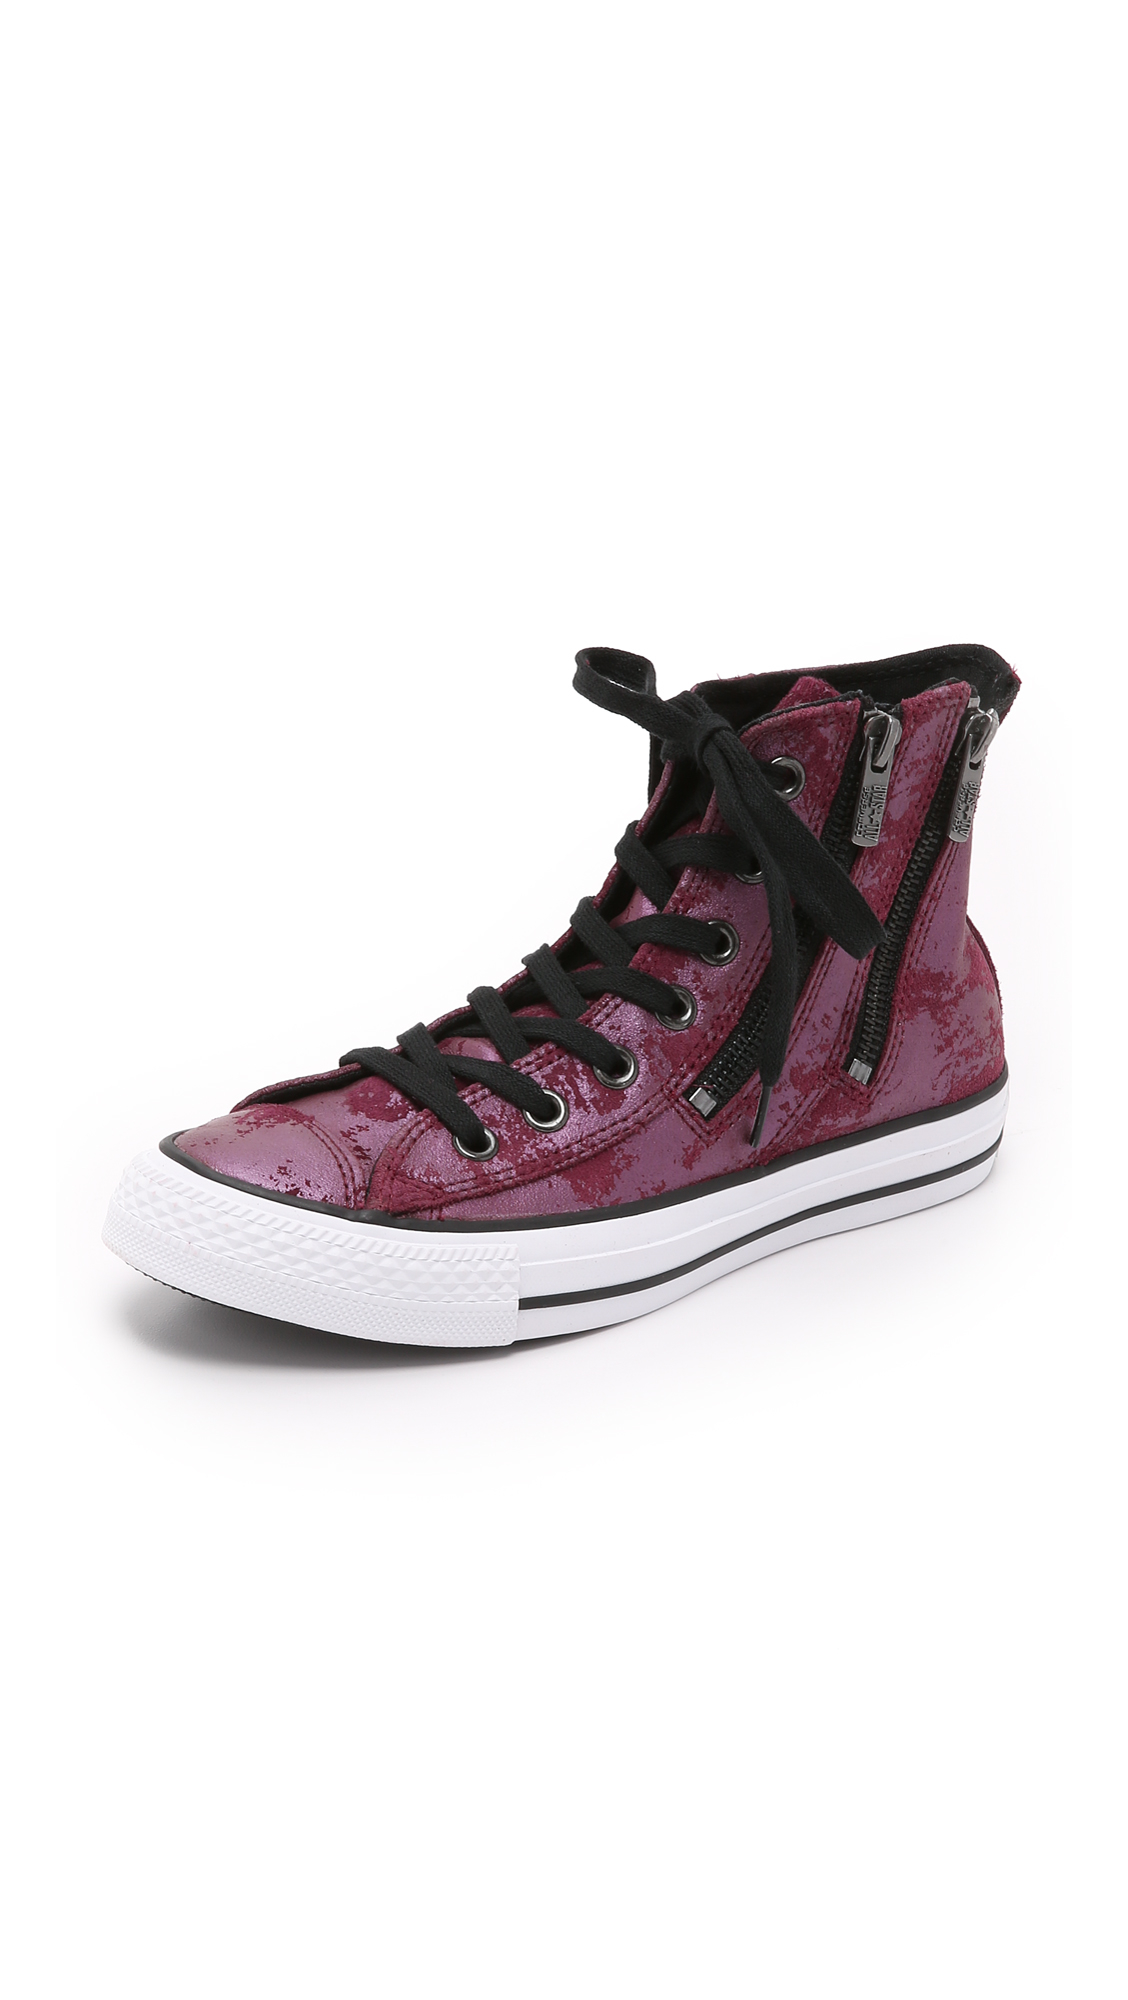 ccd0ef181ab2 Lyst - Converse Chuck Taylor All Star Dual Zip High Top Sneakers ...